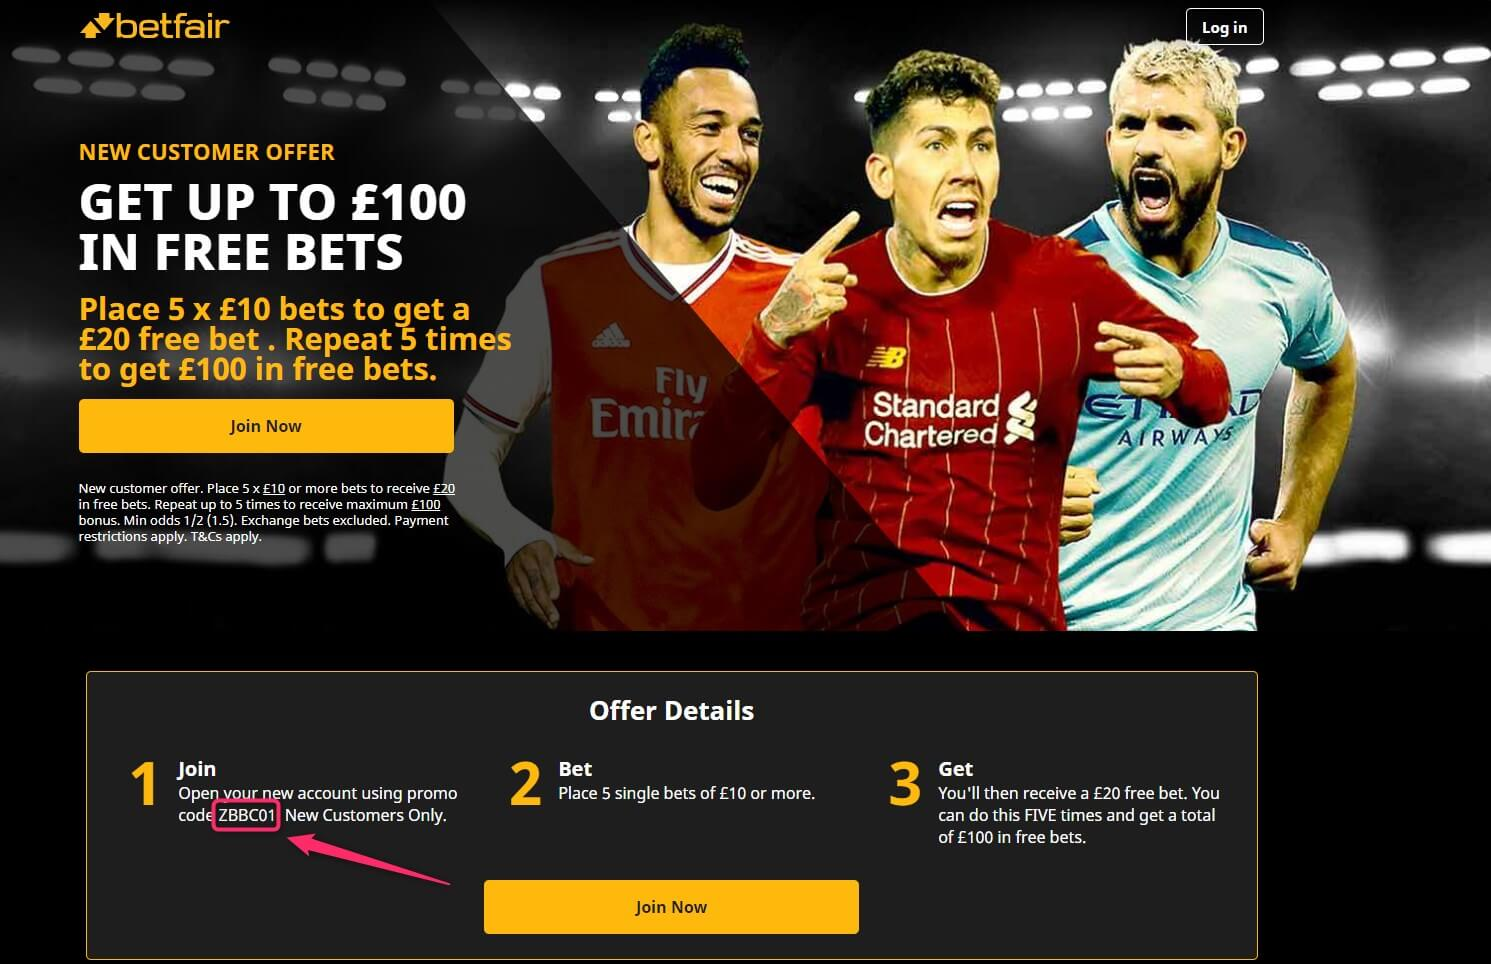 betfair sportsbook welcome offer promotion code